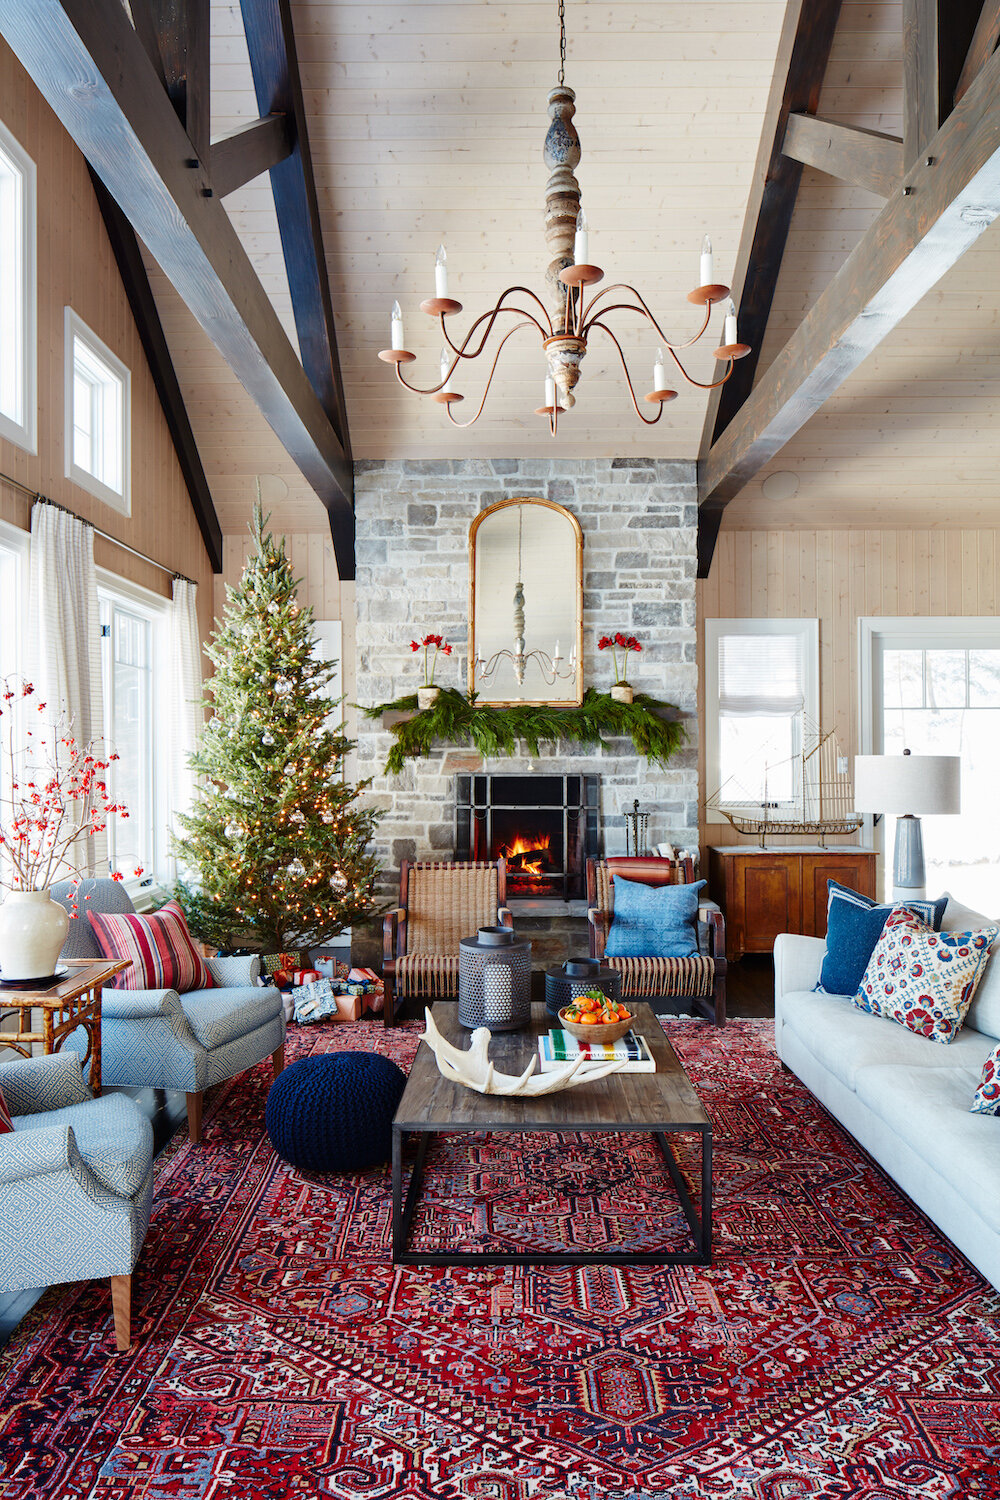 Holiday Decorations in a Warm Canadian Home — THE NORDROOM